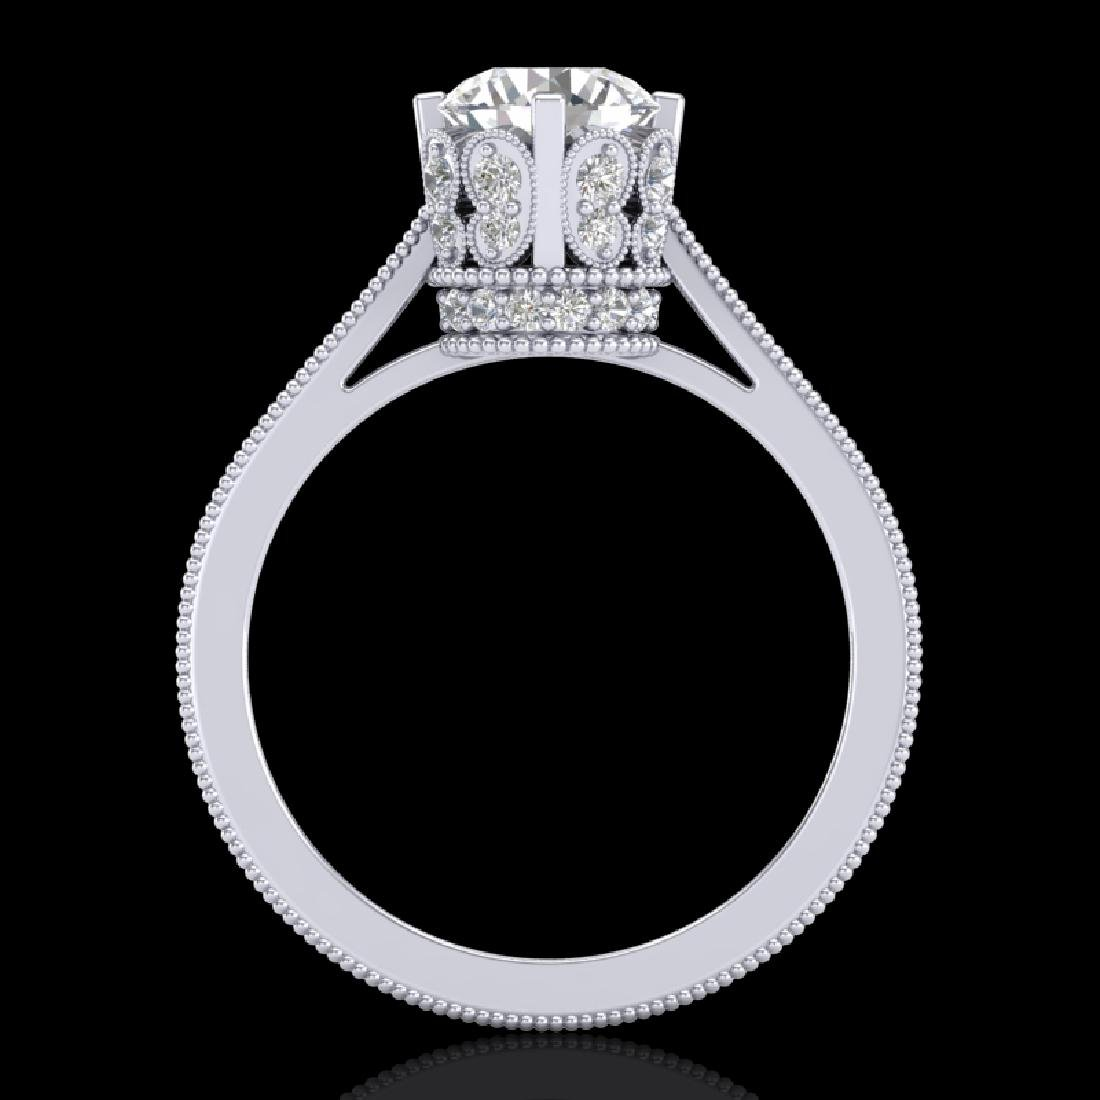 1.5 CTW VS/SI Diamond Art Deco Ring 18K White Gold - 3